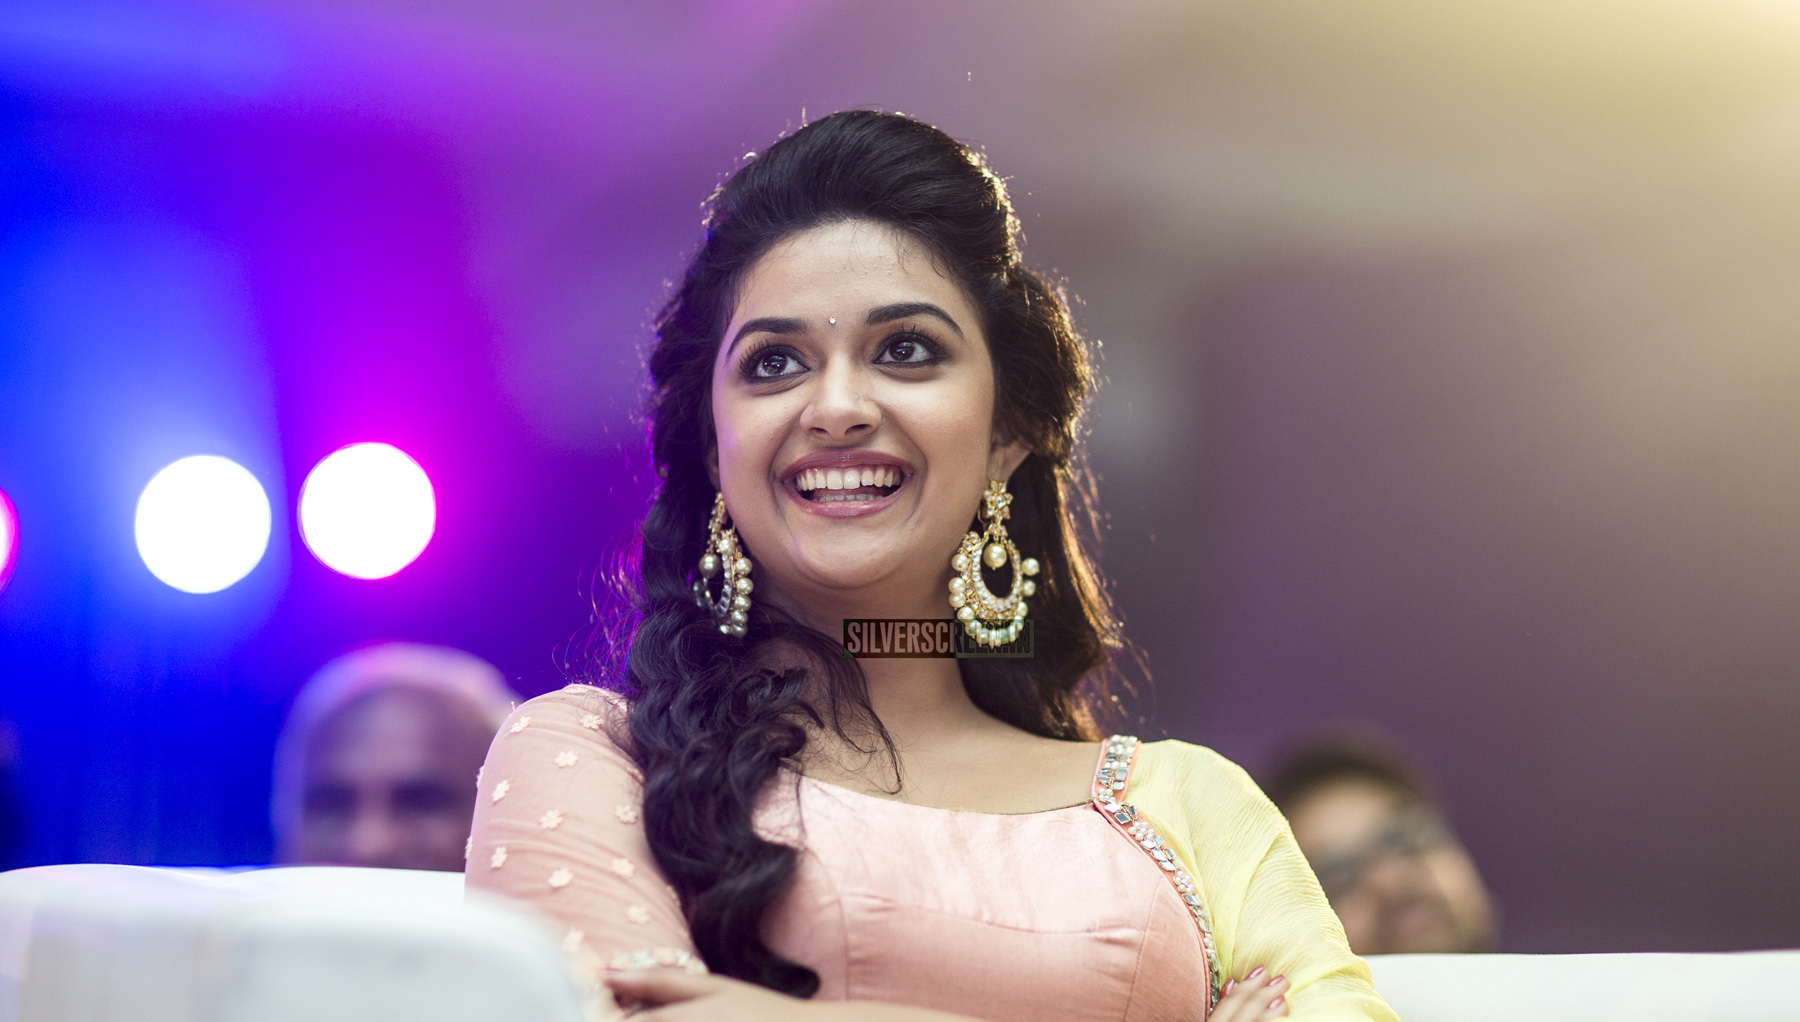 Keerthy Suresh at Remo First Look Launch - Silverscreen.in